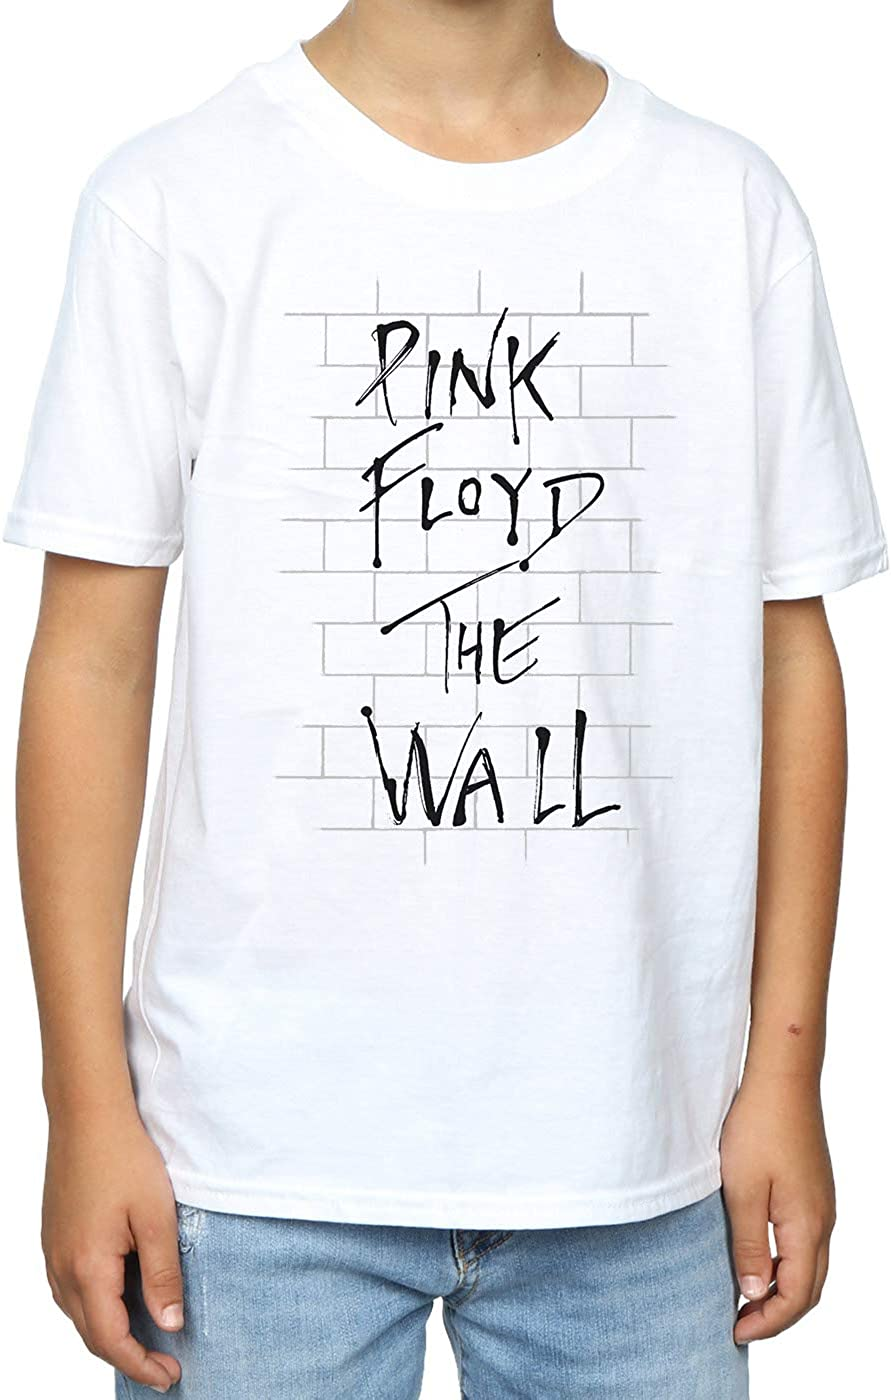 PINK FLOYD ROGER WATERS THE WALL Kids Boys Girls Licensed Band Tee Shirt SM-XL